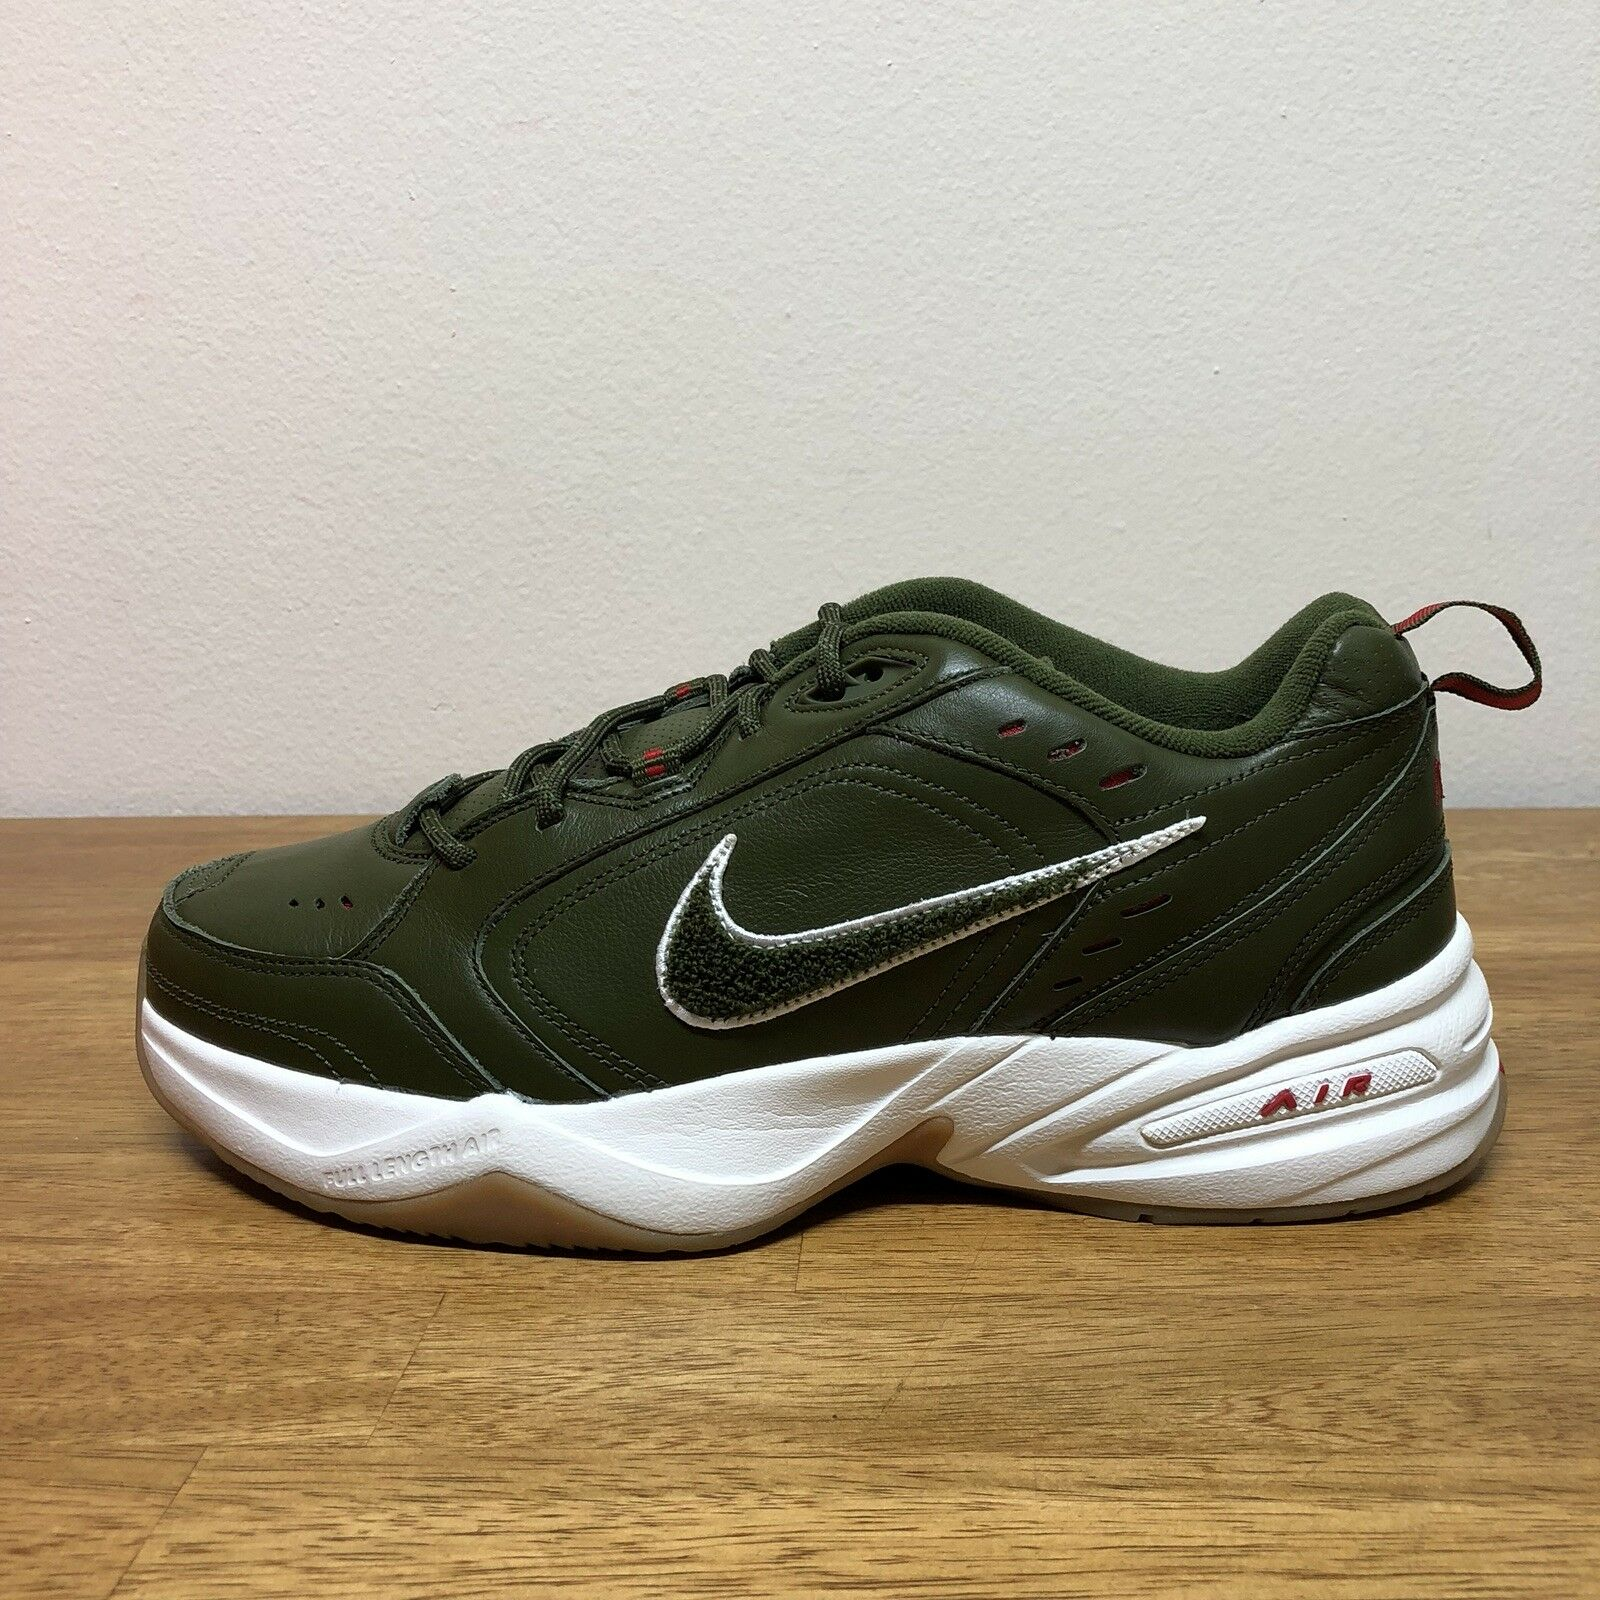 Nike Air Monarch IV 4 PR Fathers Day Weekend Campout Mens Size 10.5 AV6676-300